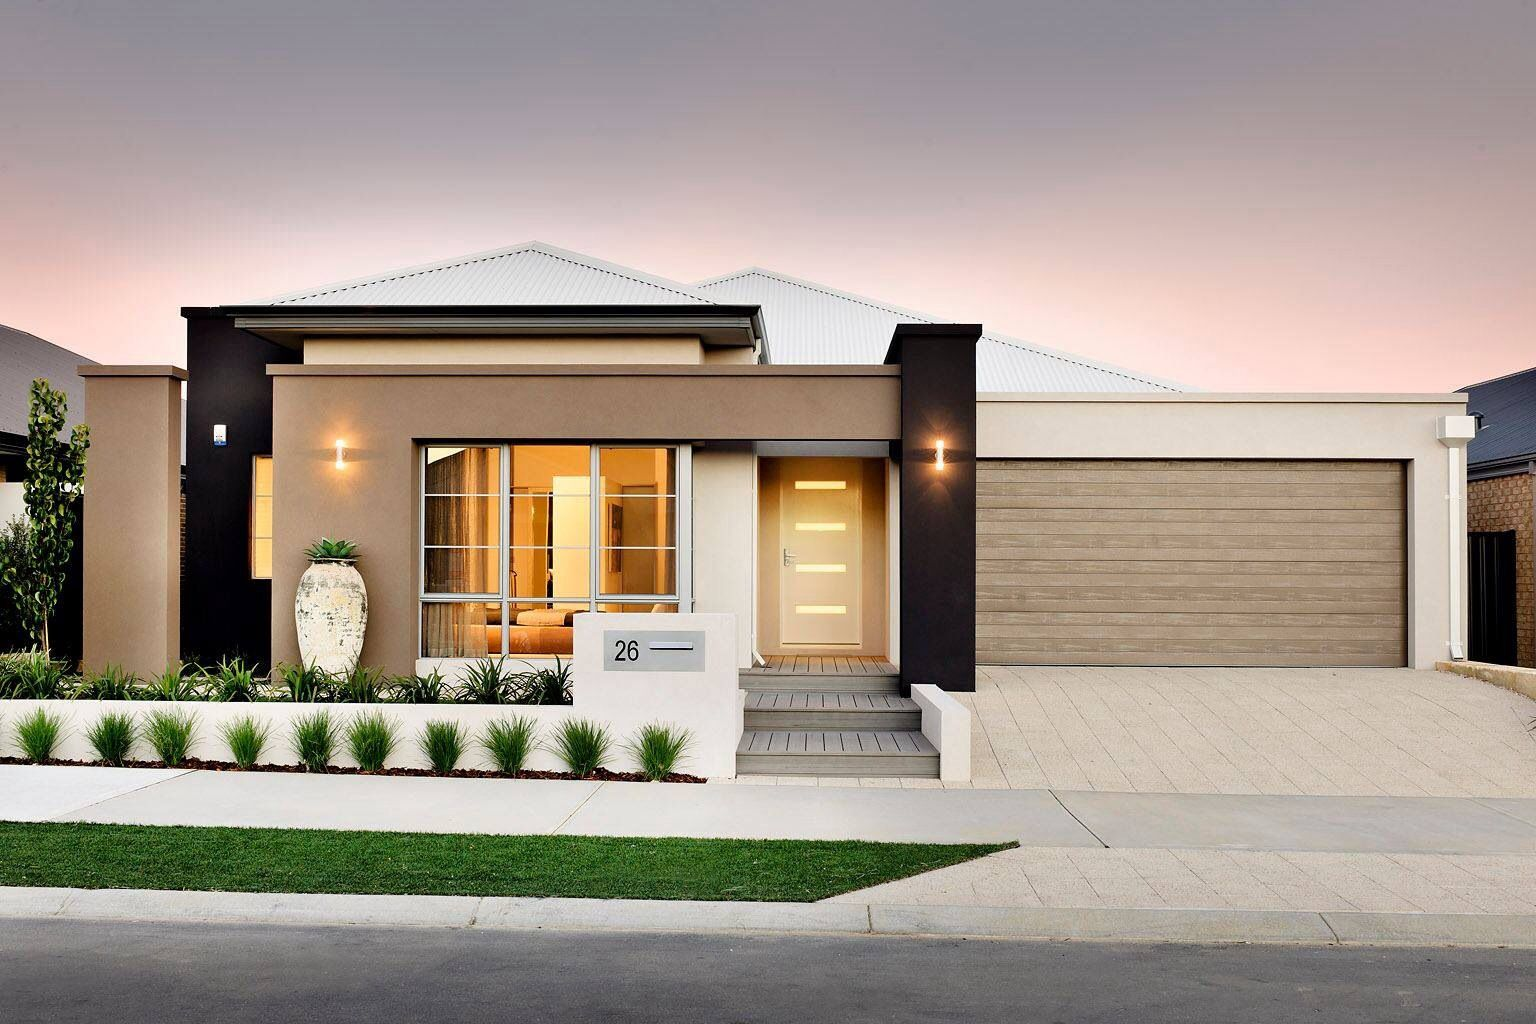 Bungalow House Plans One Level With Open Floor Modern Contemporary European Minimalist Style Beautiful House Plans Bungalow House Design Modern Bungalow House